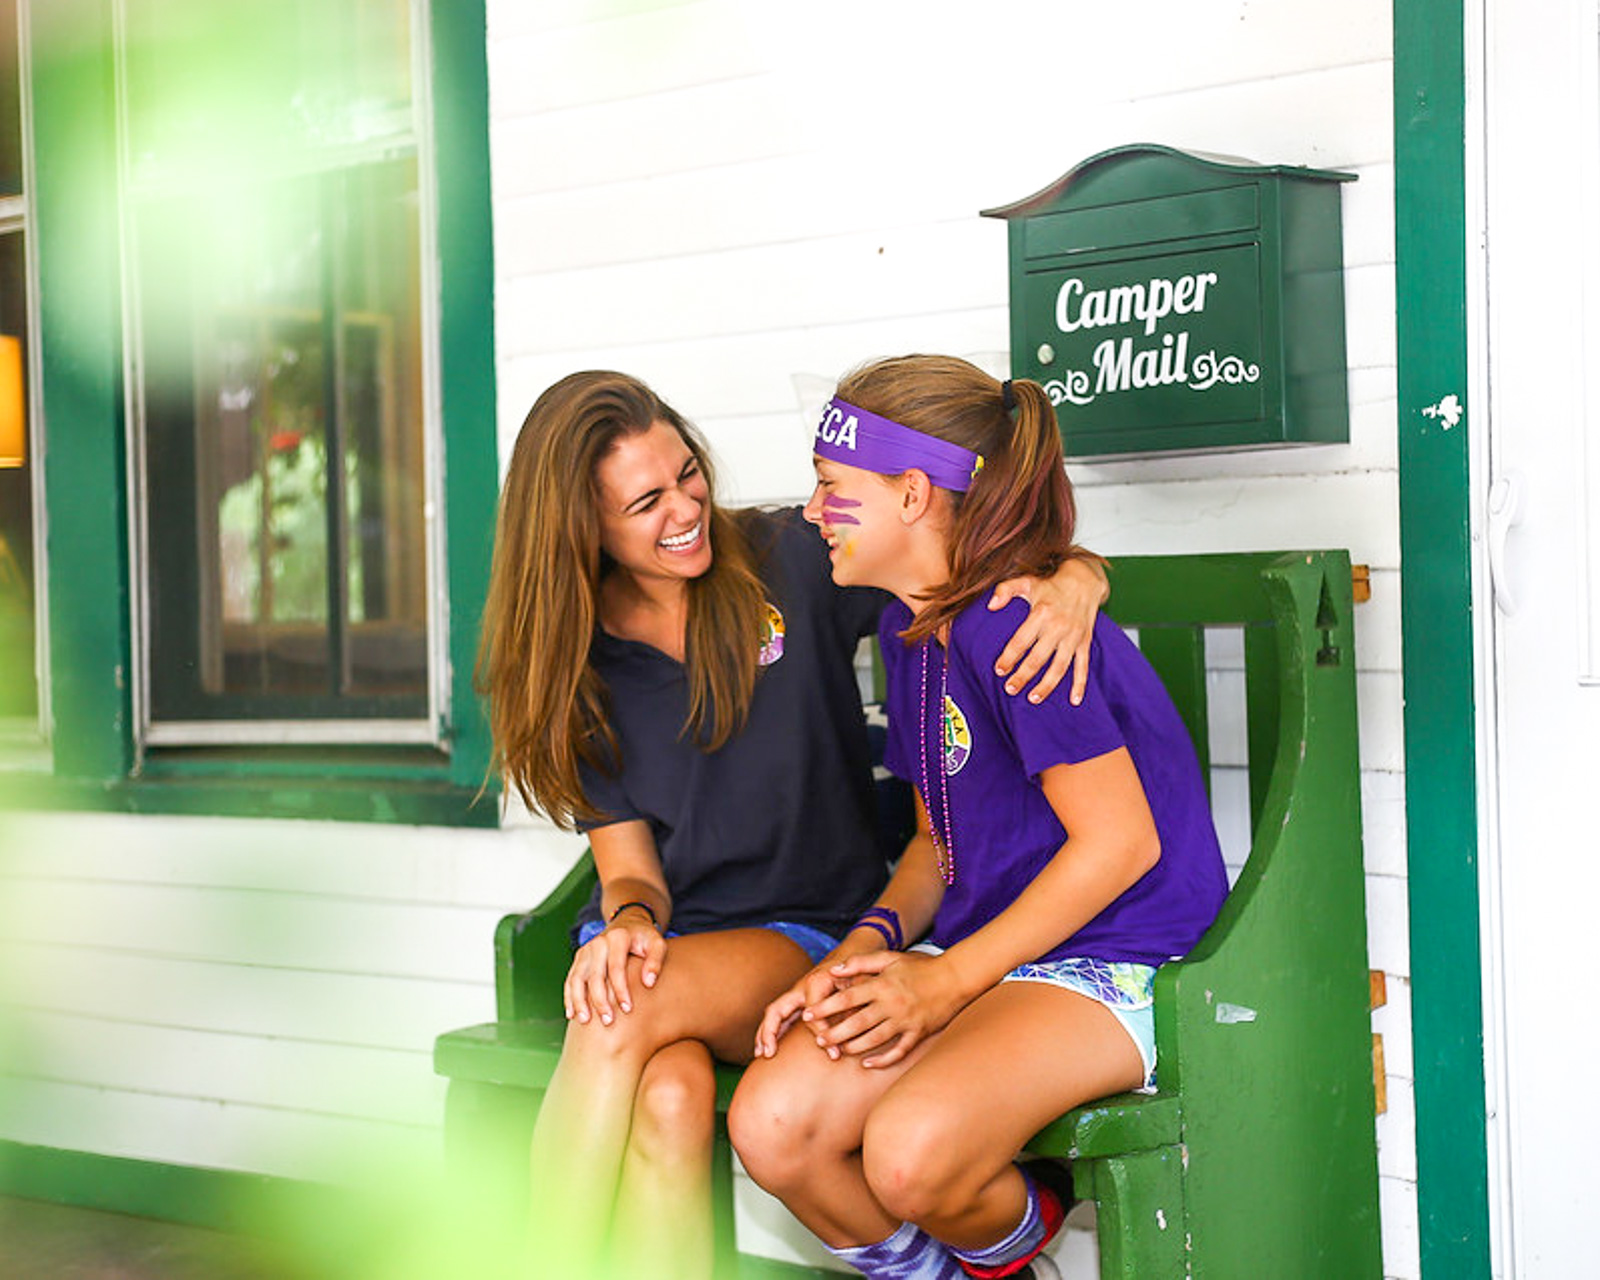 Camp director laughs with girl on porch bench